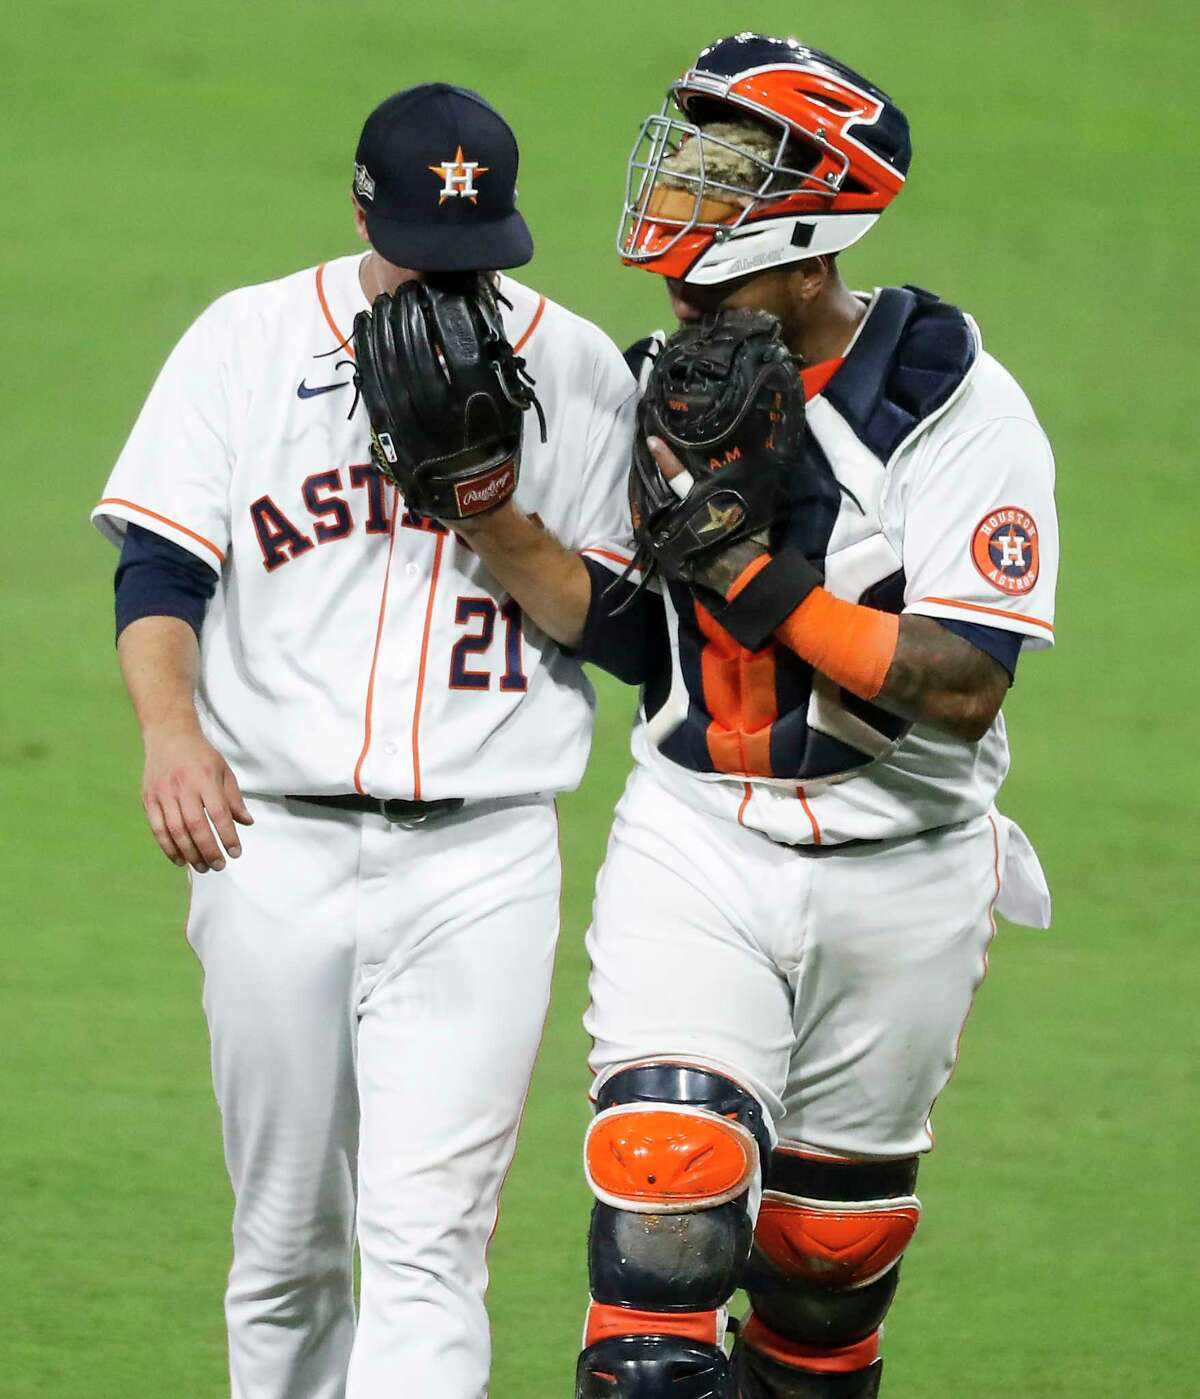 Houston Astros starter Zack Greinke (21) and catcher Martin Maldonado (15) walk off the field at the end of the fourth inning after giving up a pair of runs in Game 4 of the American League Championship Series at Petco Park Wednesday, Oct. 14, 2020, in San Diego.